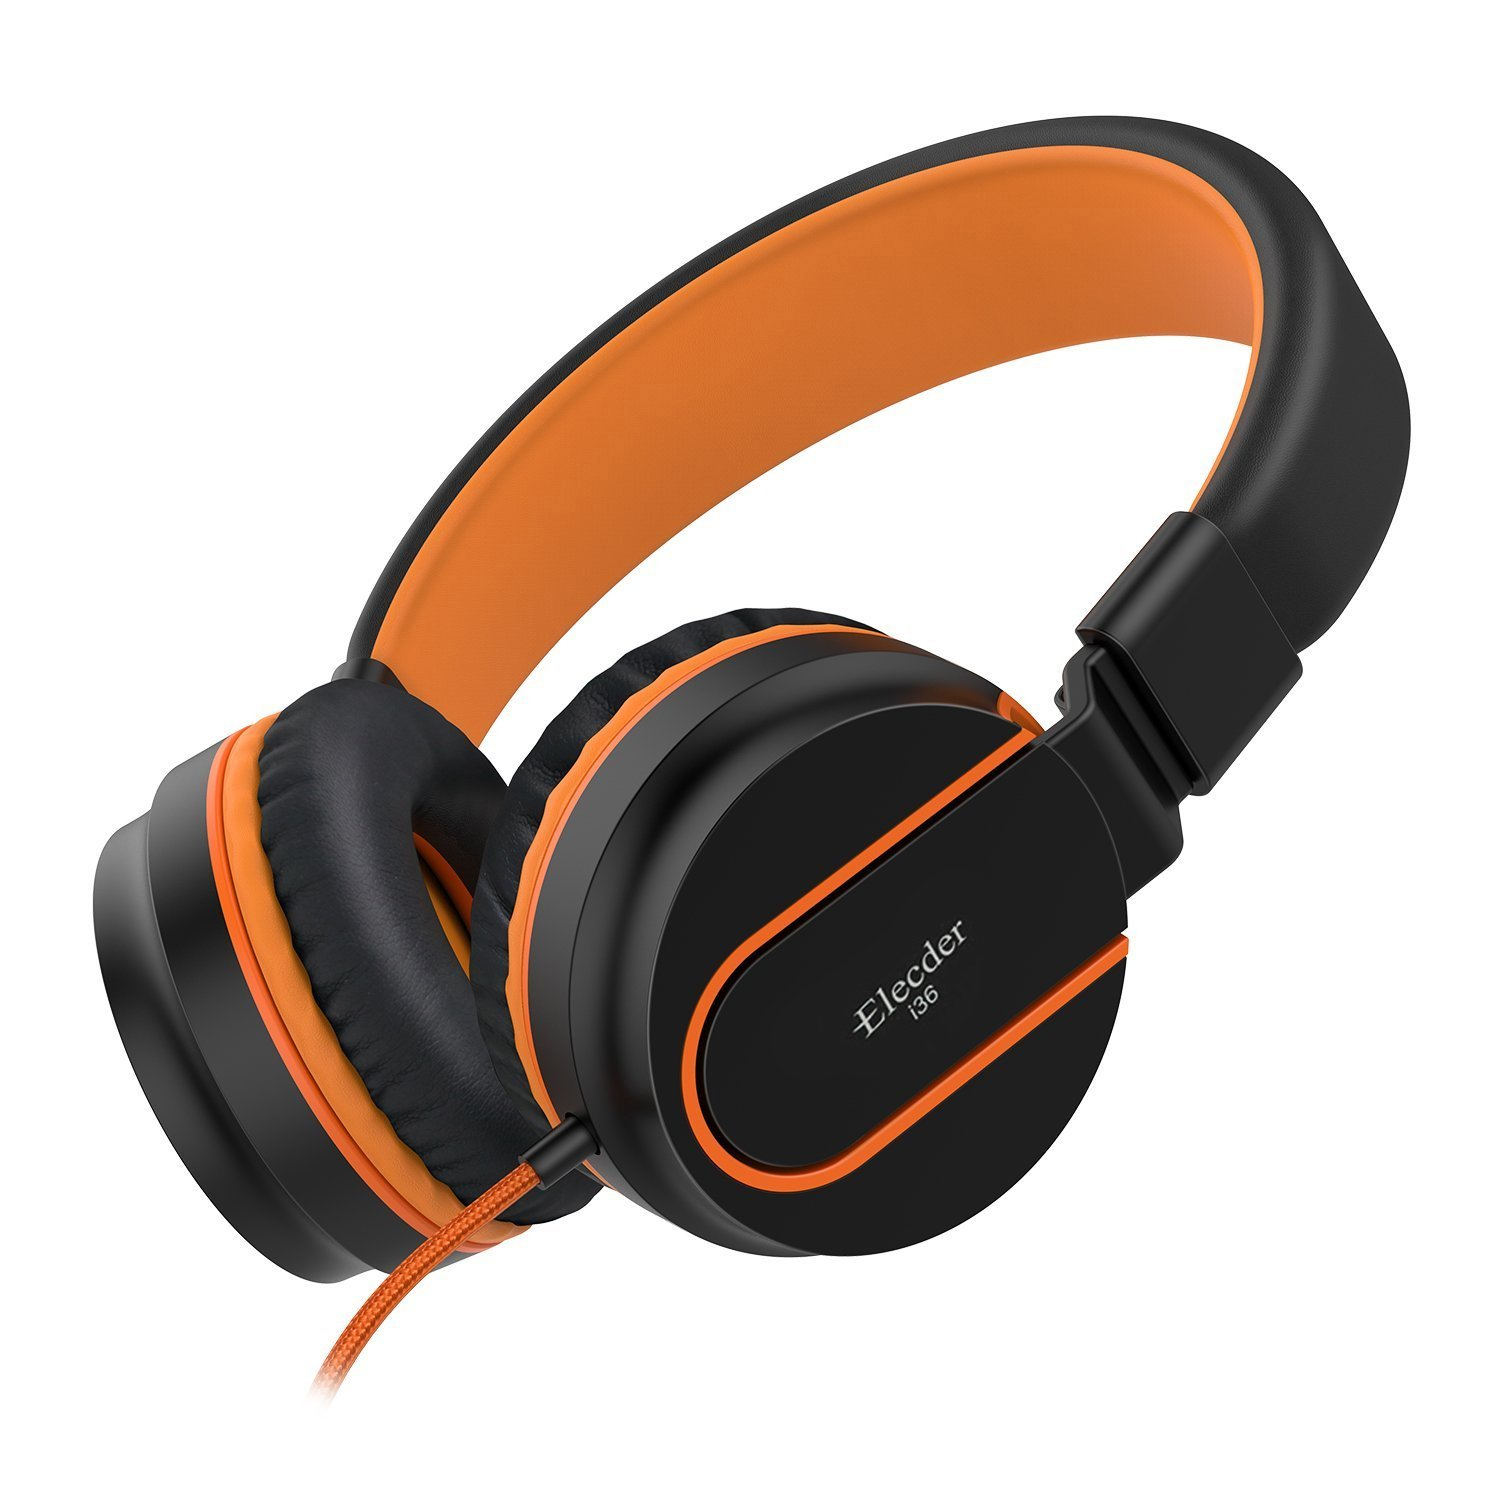 Elecder i36 Kids Headphones for Children, Girls, Boys, Teens, Adults, Foldable Adjustable Over Ear Headsets with 3.5mm Jack for iPad Cellphones Computer MP3/4 Kindle Airplane School (Black/Orange) by ELECDER